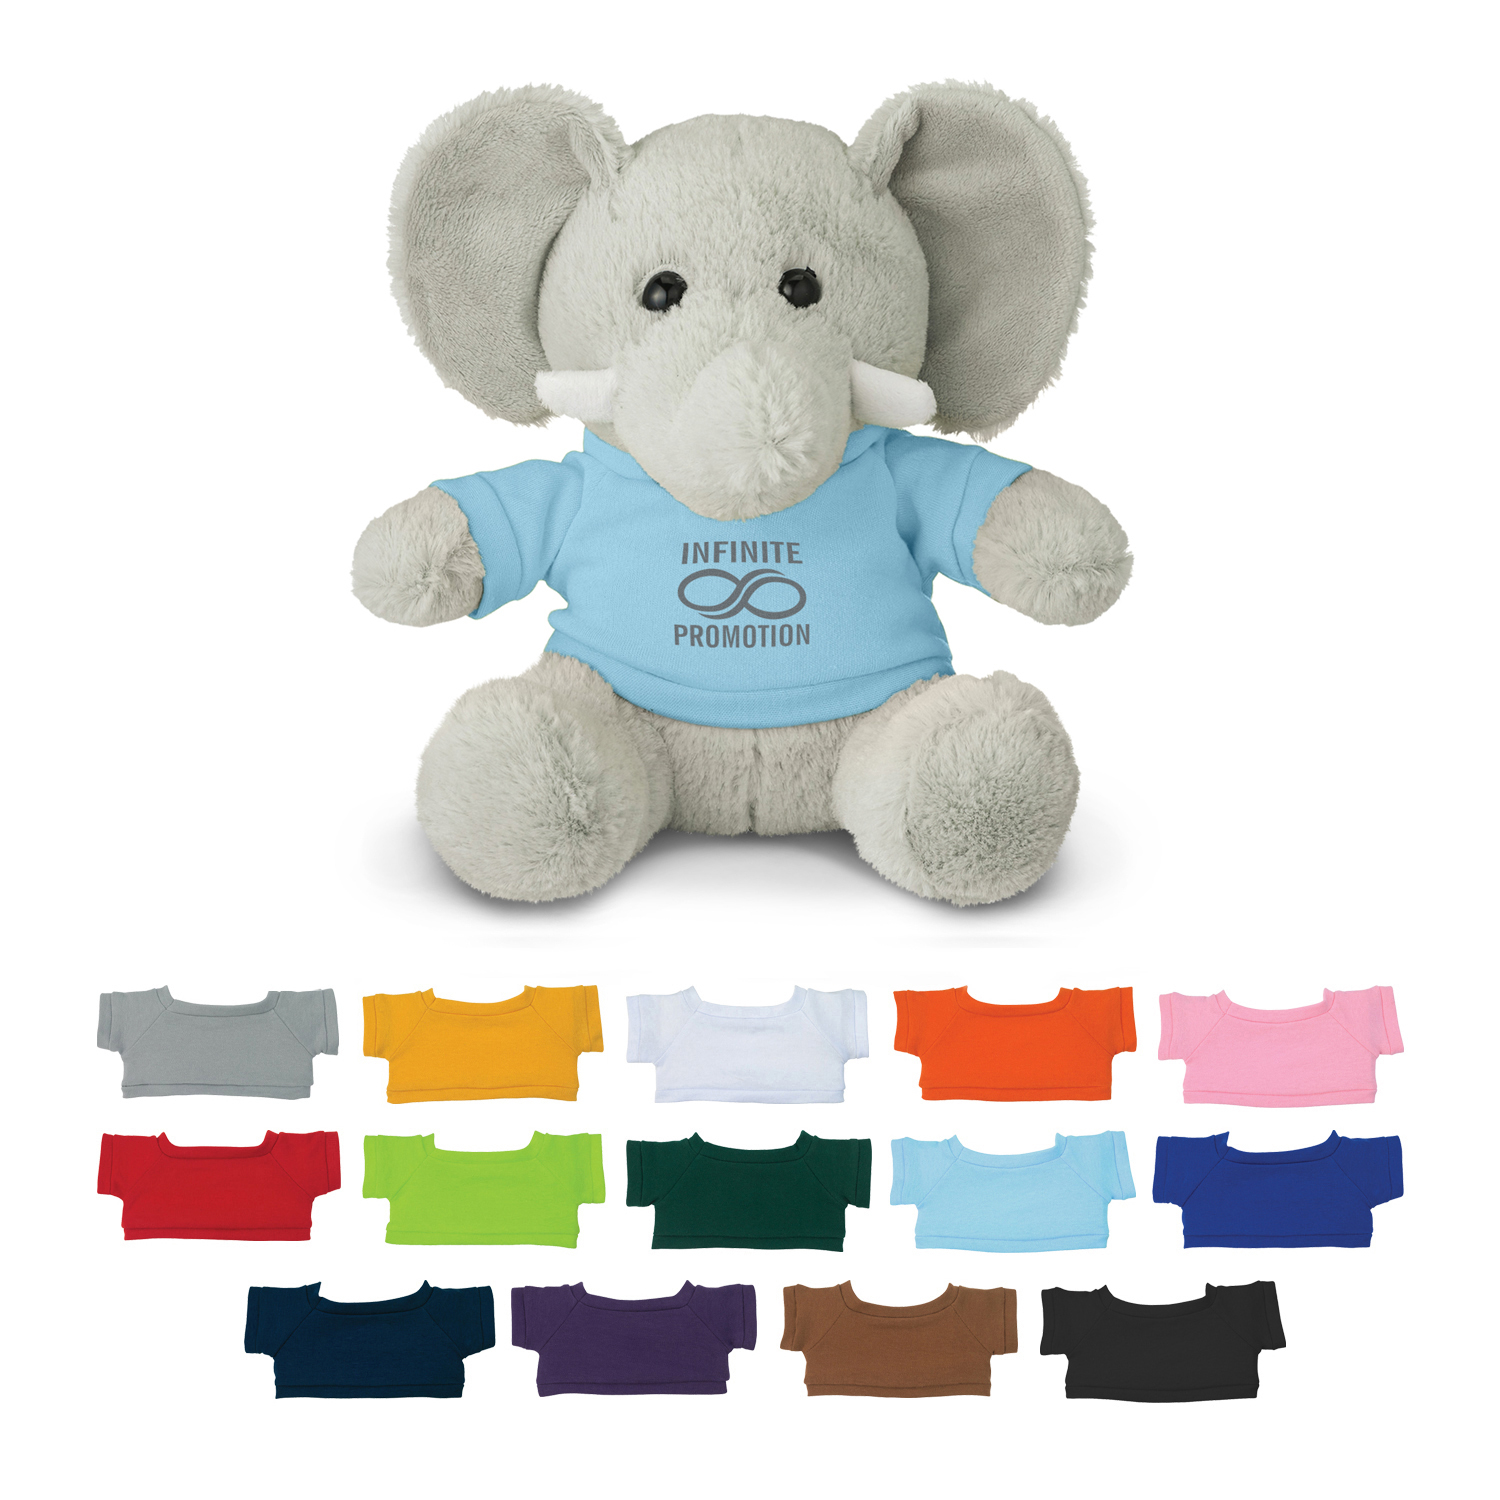 Small Excellent Elephant – 111557